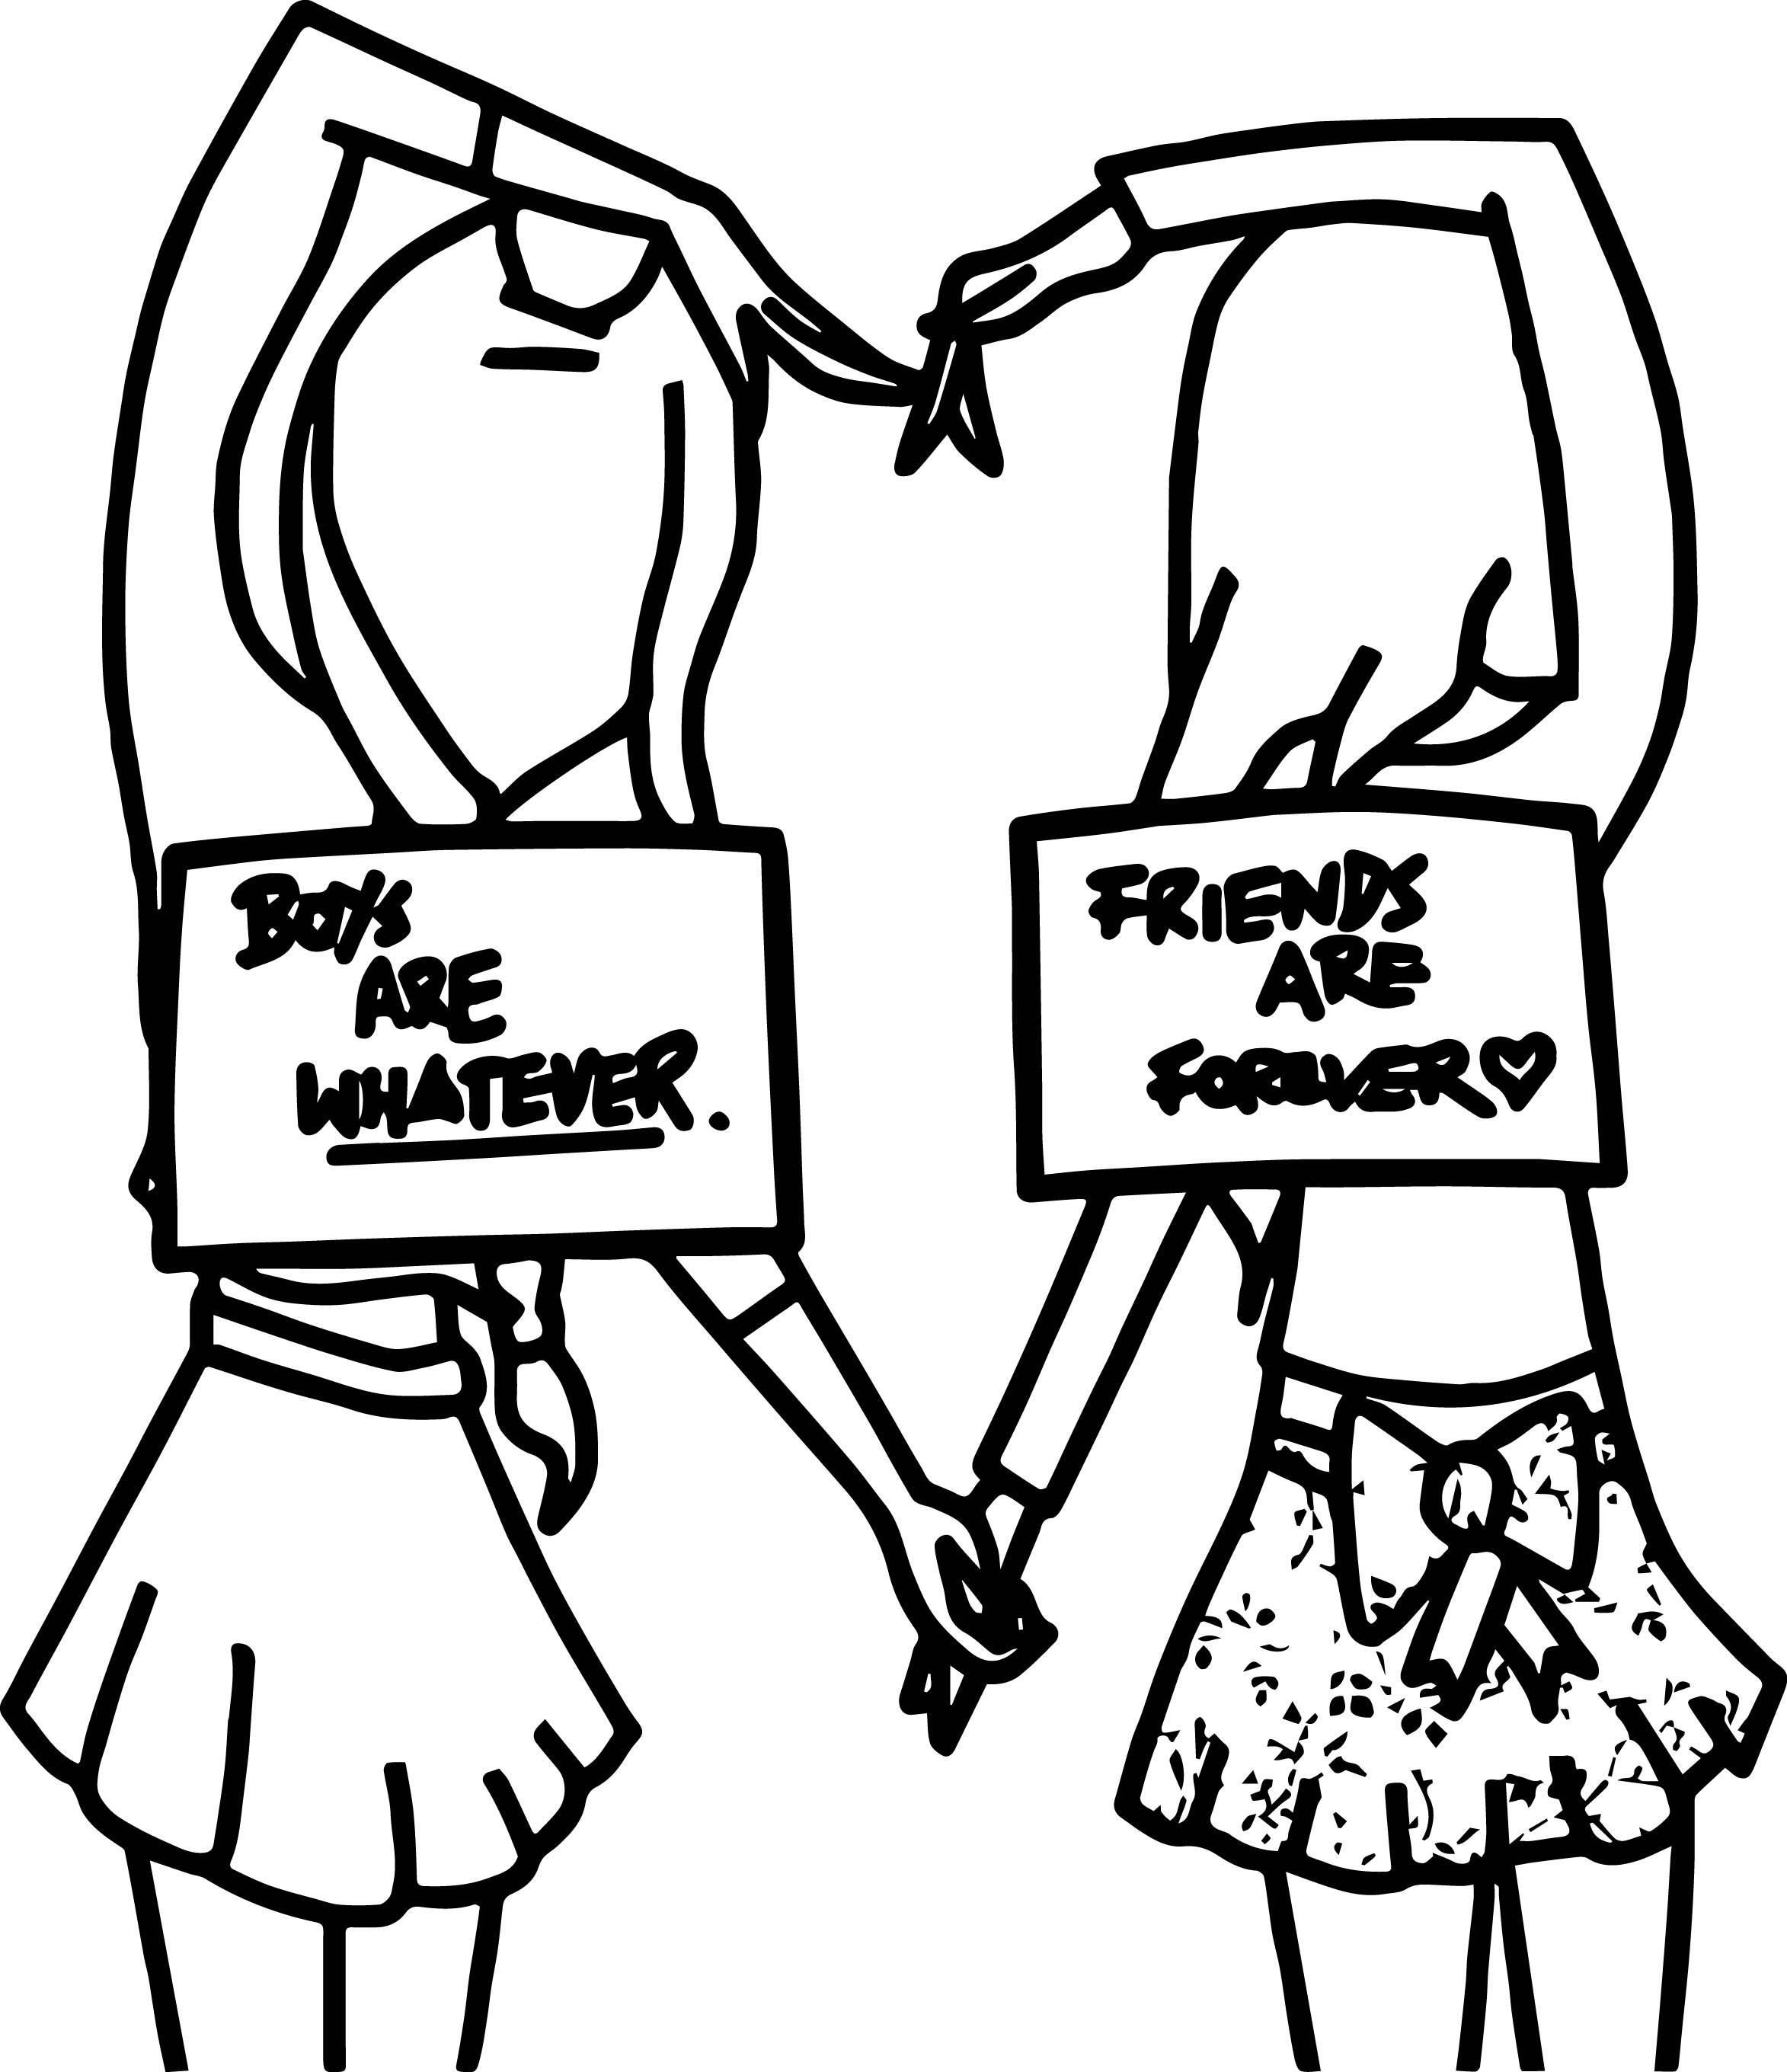 coloring pages for tweens tween coloring pages coloring home coloring for tweens pages